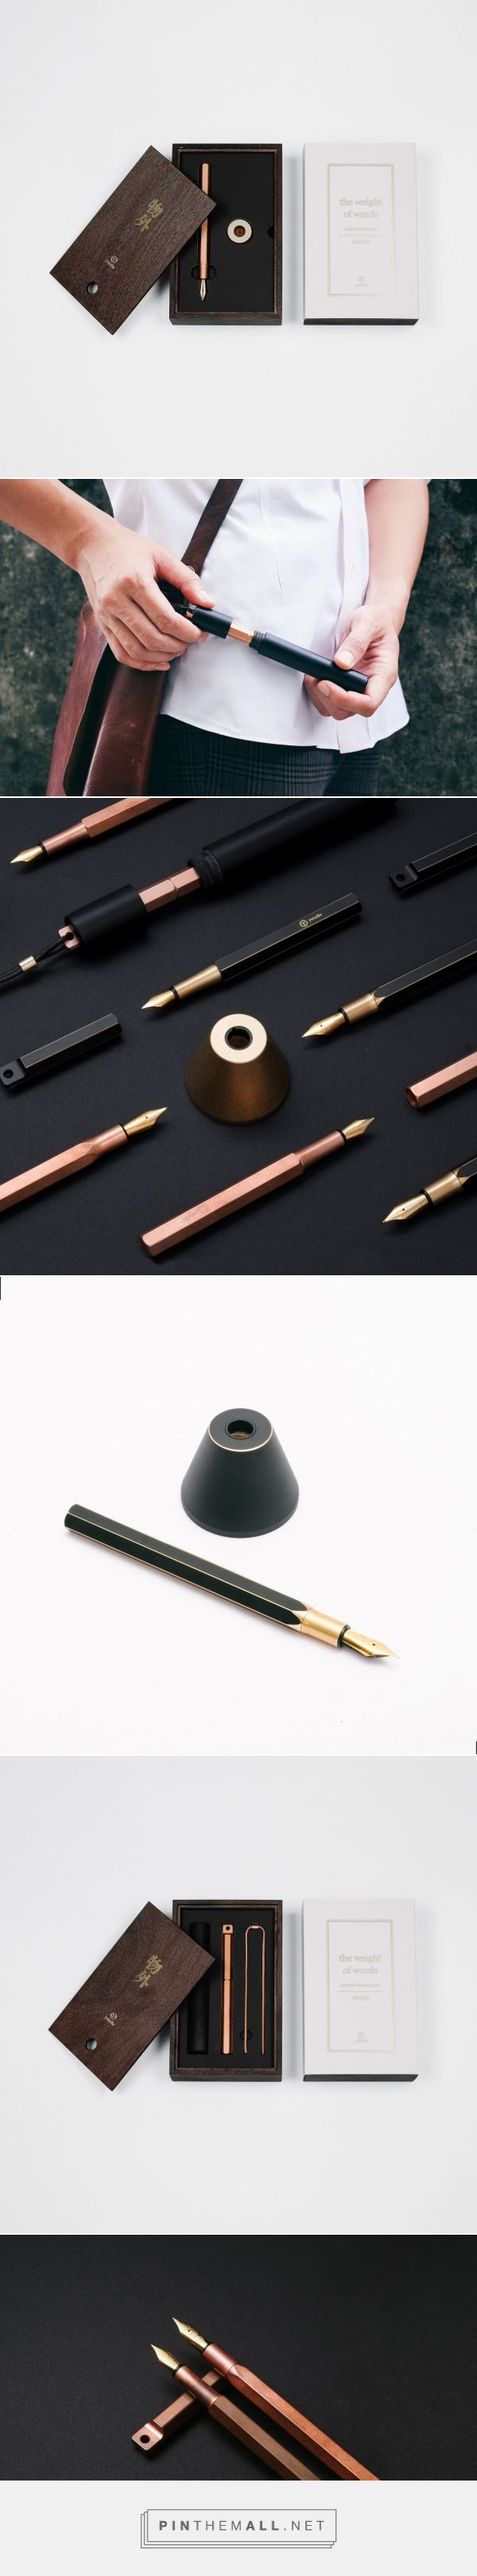 The Weight Of Words - Fountain Pen - Packaging of the World - Creative Package Design Gallery - http://www.packagingoftheworld.com/2016/11/the-weight-of-words-fountain-pen.html